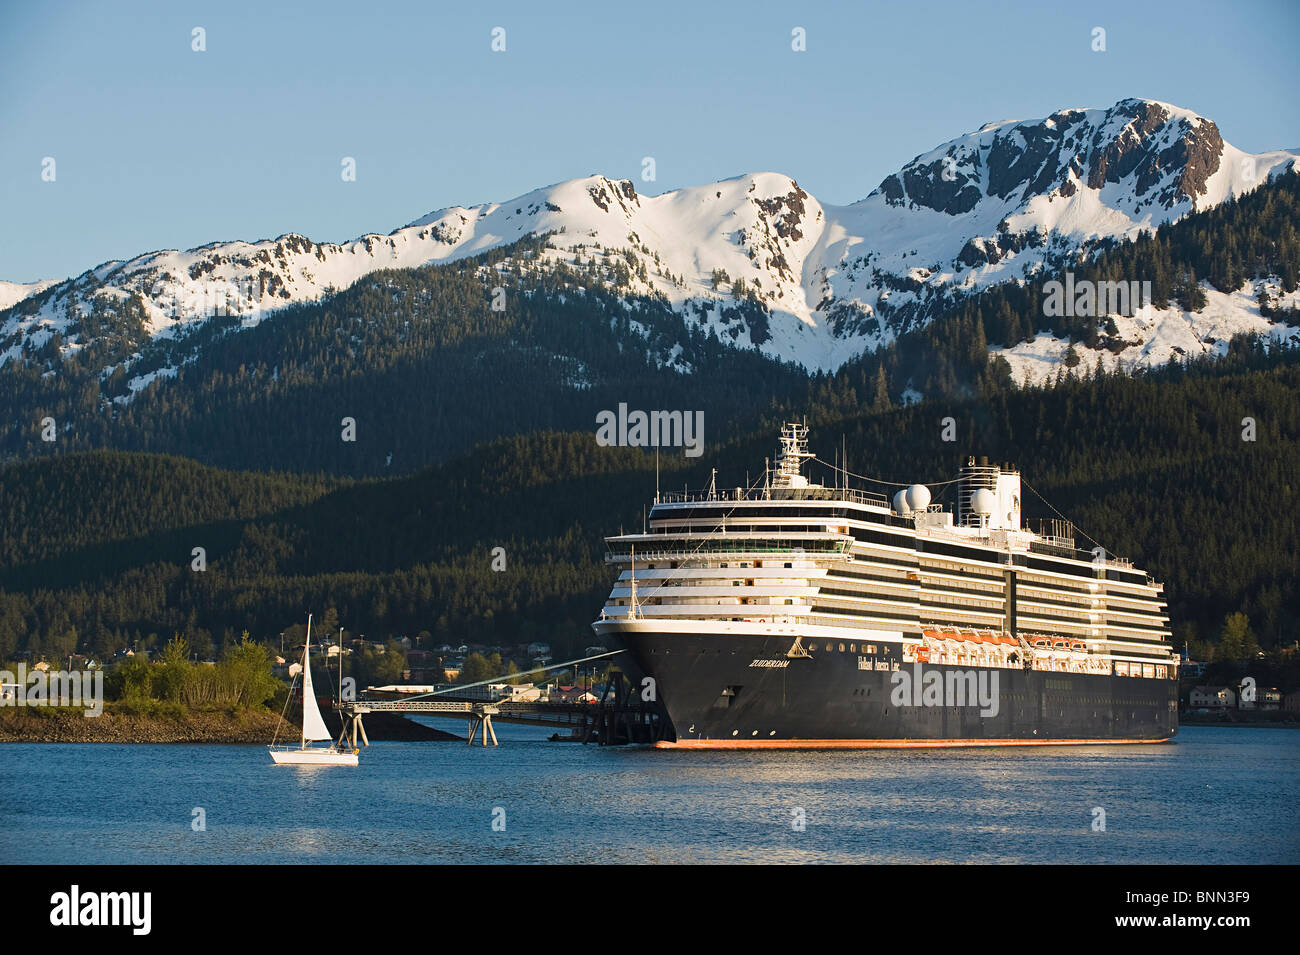 A sailboat passes in front of the docked Holland America Line cruise ship/n'Zuiderdam' in Gastineau Channel, - Stock Image